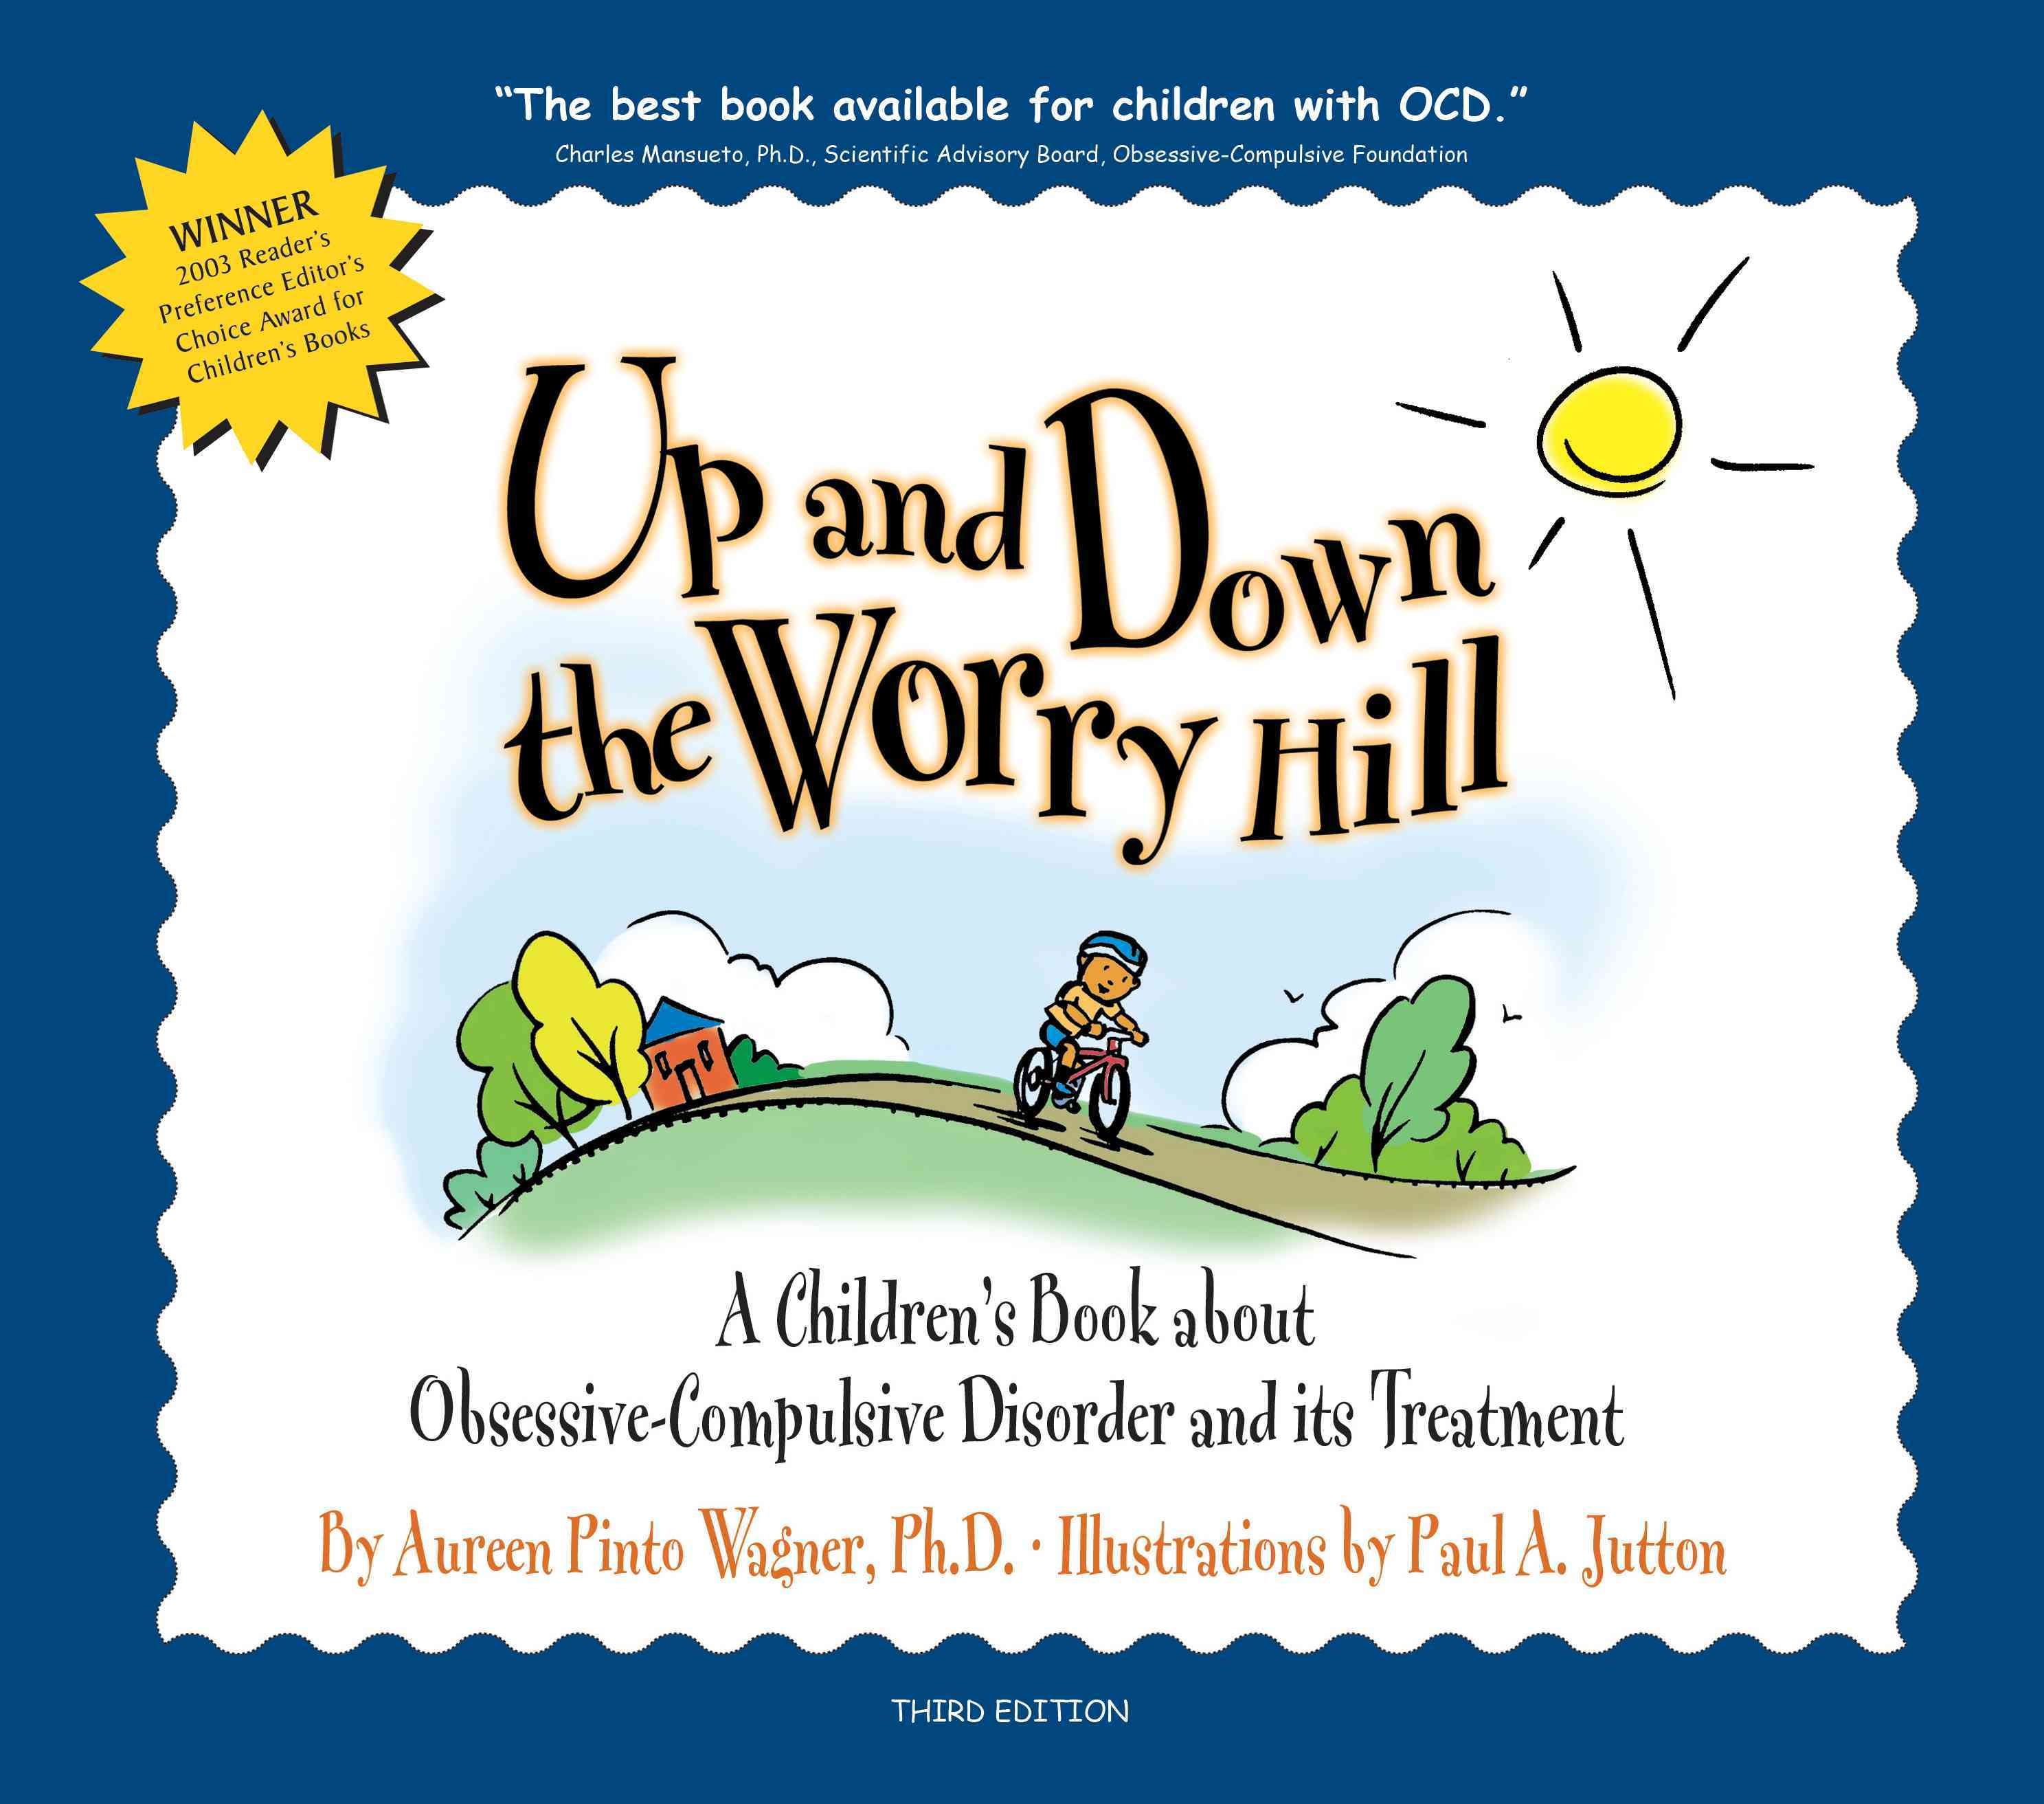 Up and Down the Worry Hill: A Children's Book About Obsessive-Compulsive Disorder and Its Treatment (Paperback)